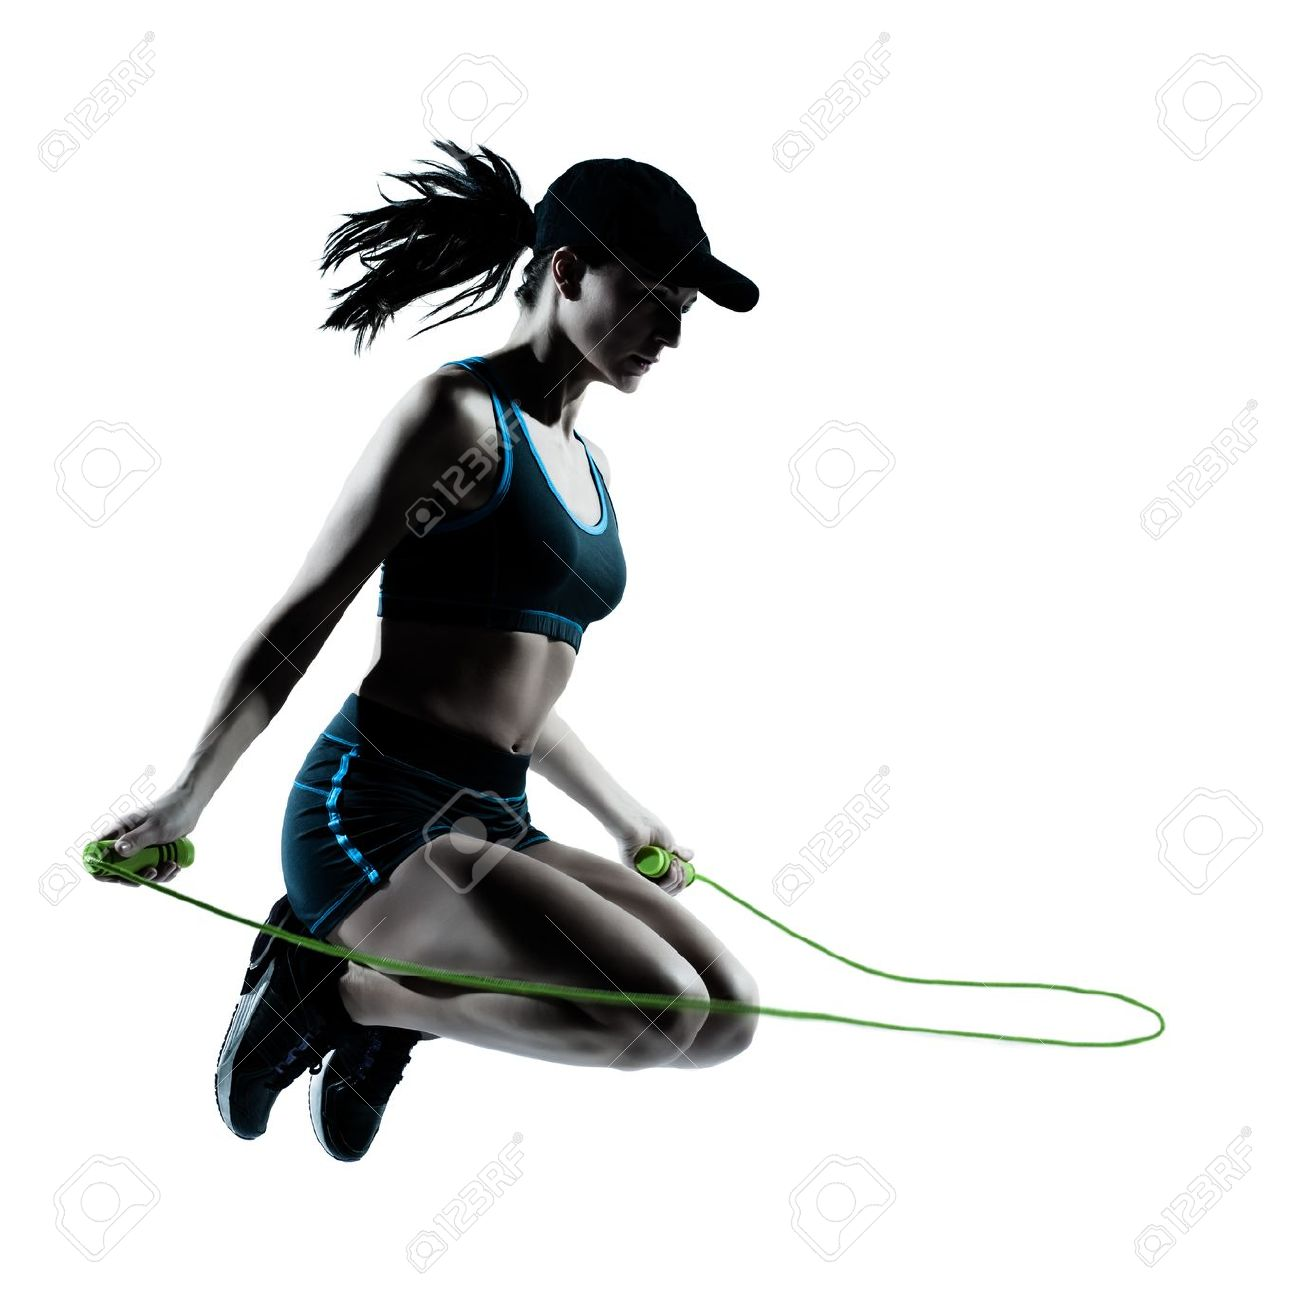 one caucasian woman runner jogger jumping rope in silhouette studio isolated on white background Stock Photo - 13543282